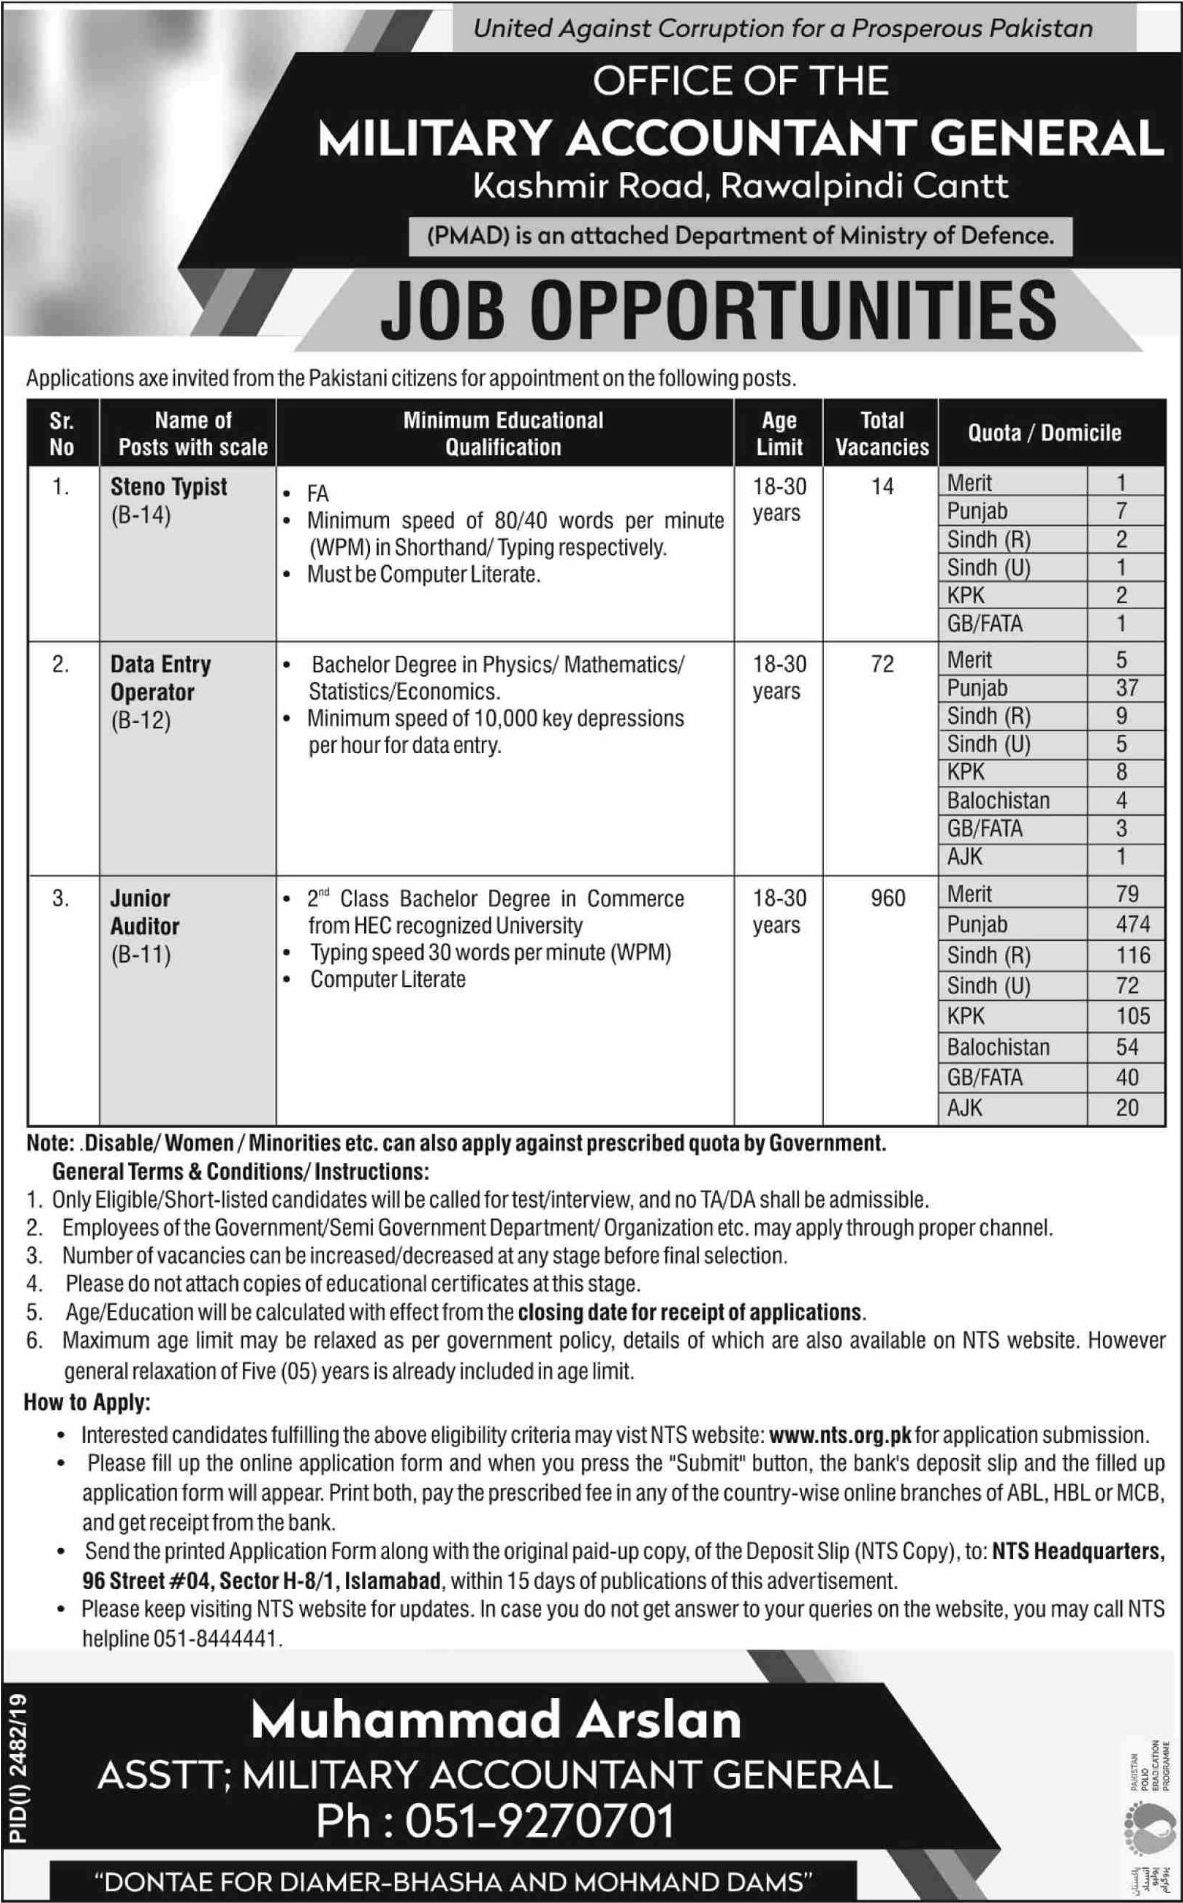 MOD Military Accountant General Office PMAD Jobs Via NTS